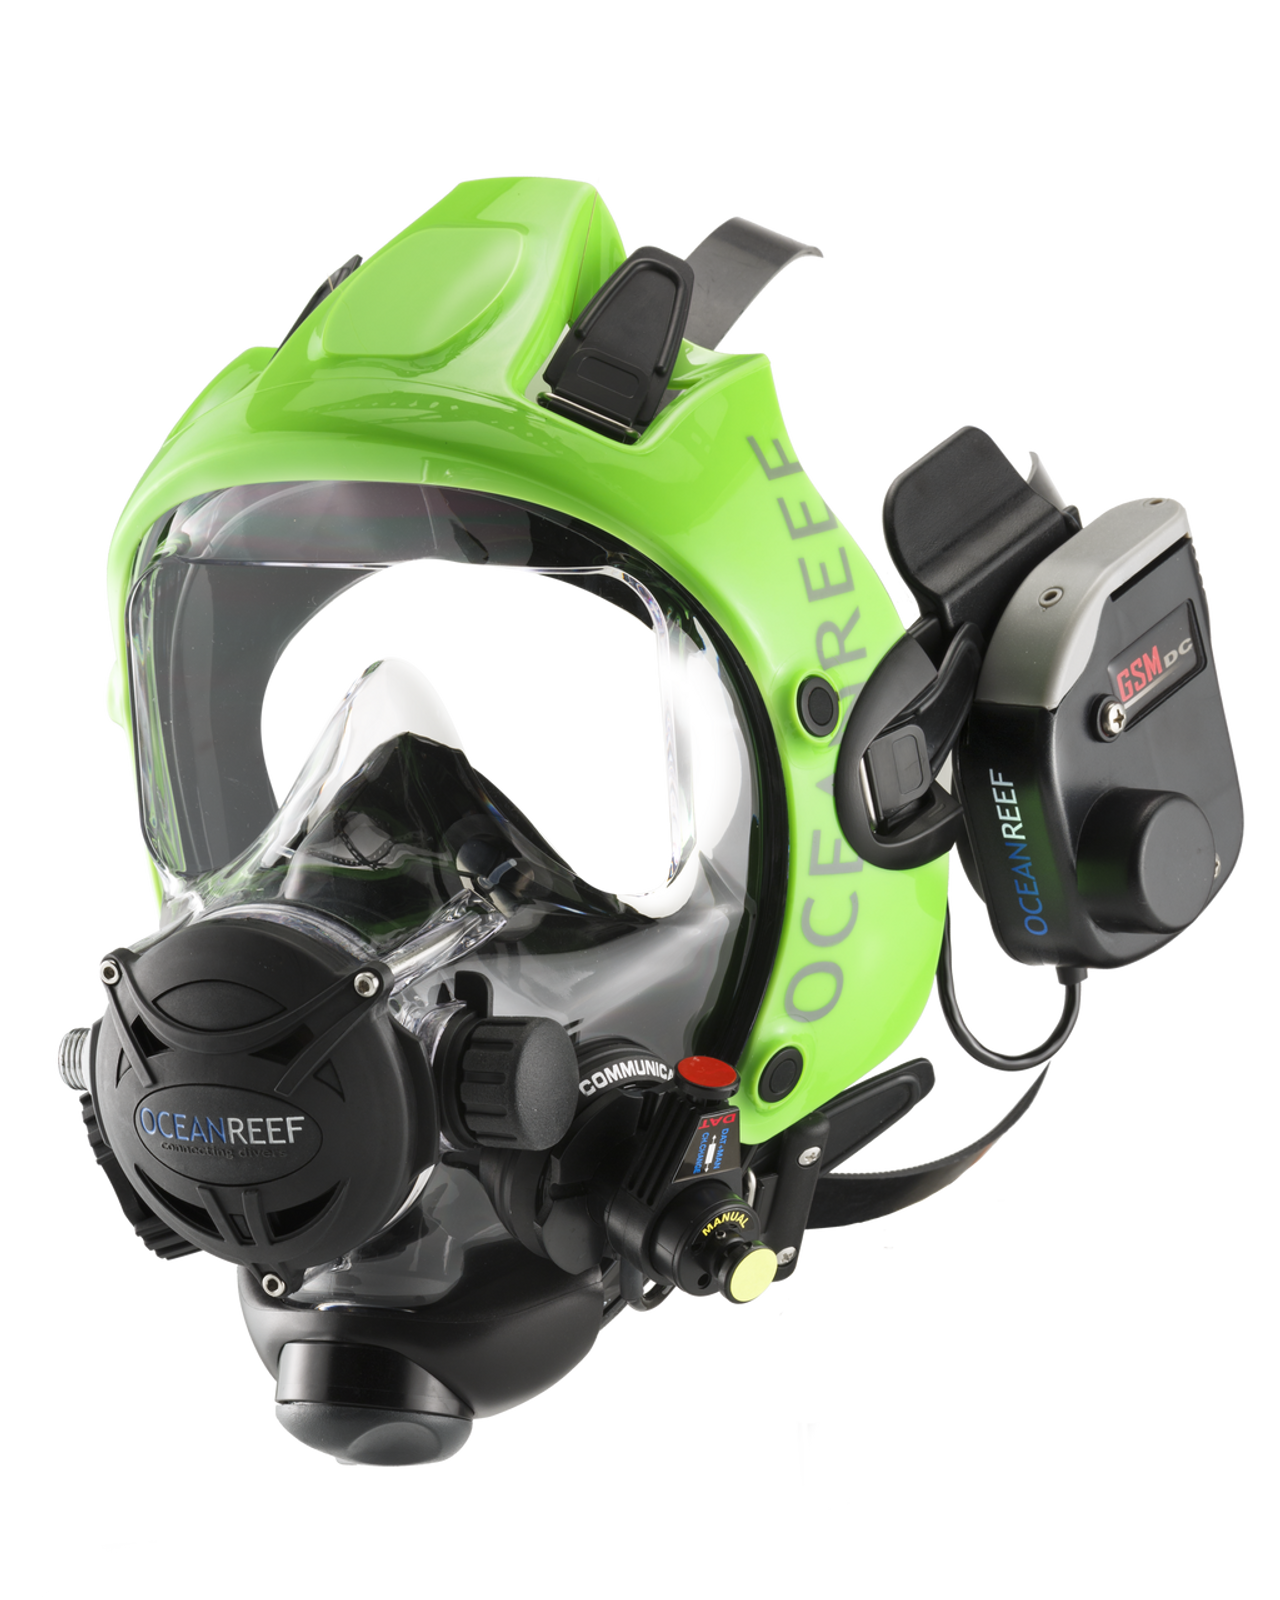 Space Extender black/green frame (an extra, not included, color option) with the GSM DC - dual channel underwater communication unit (wireless)